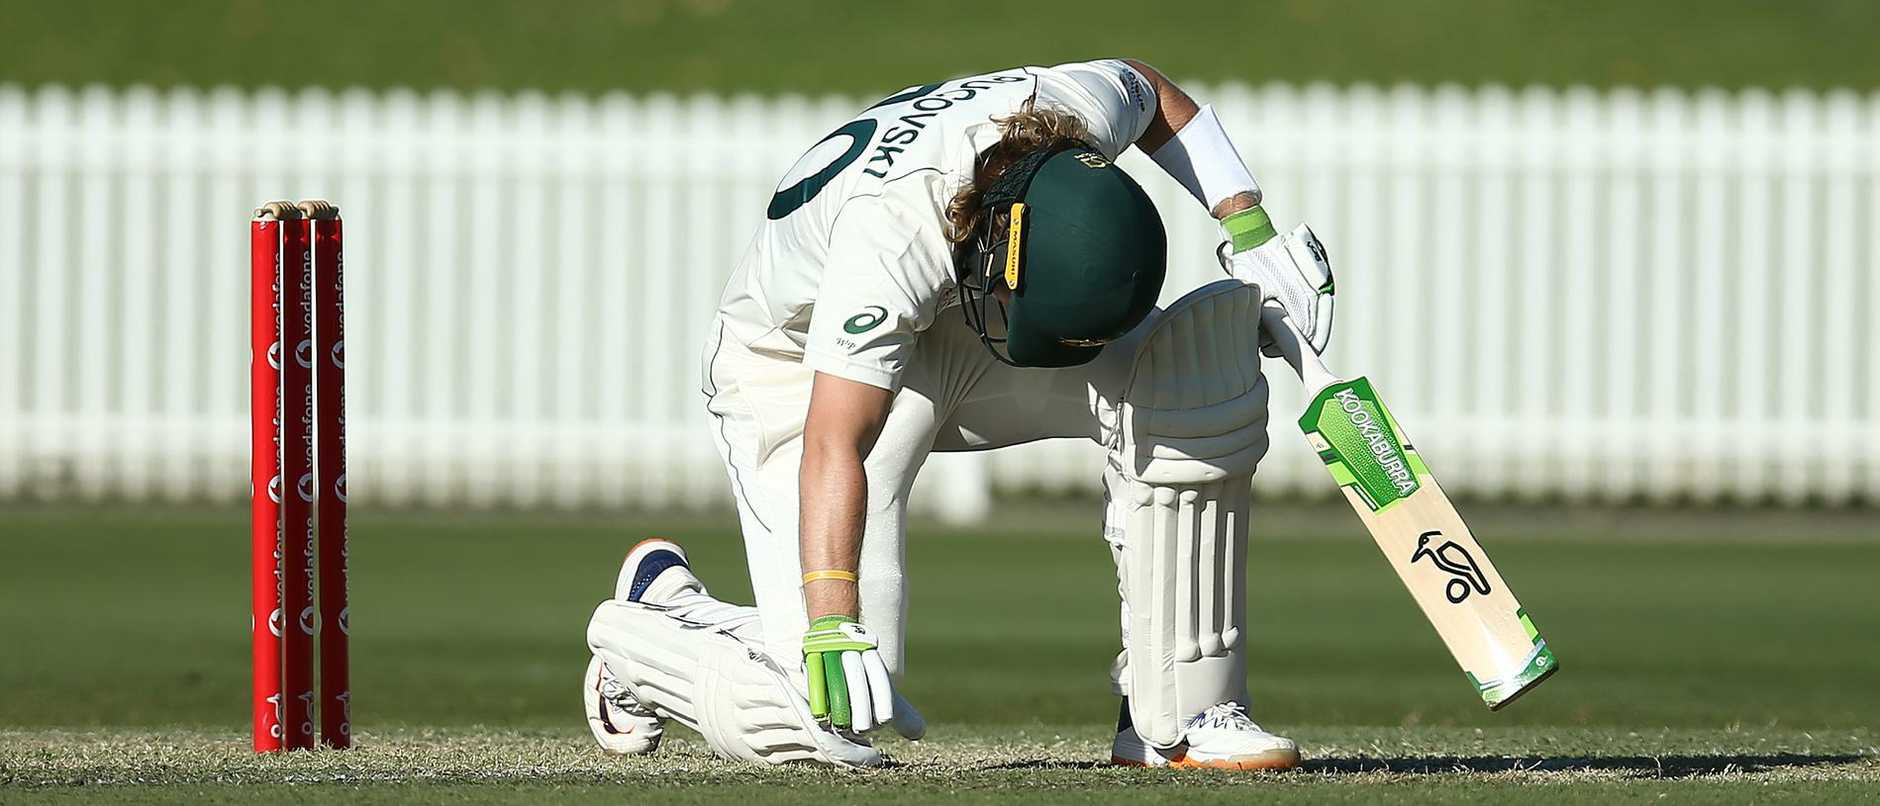 The Australia A clash finished in sickening circumstances, with rising star Will Pucovski collapsing to the turf after he was struck by a bouncer.